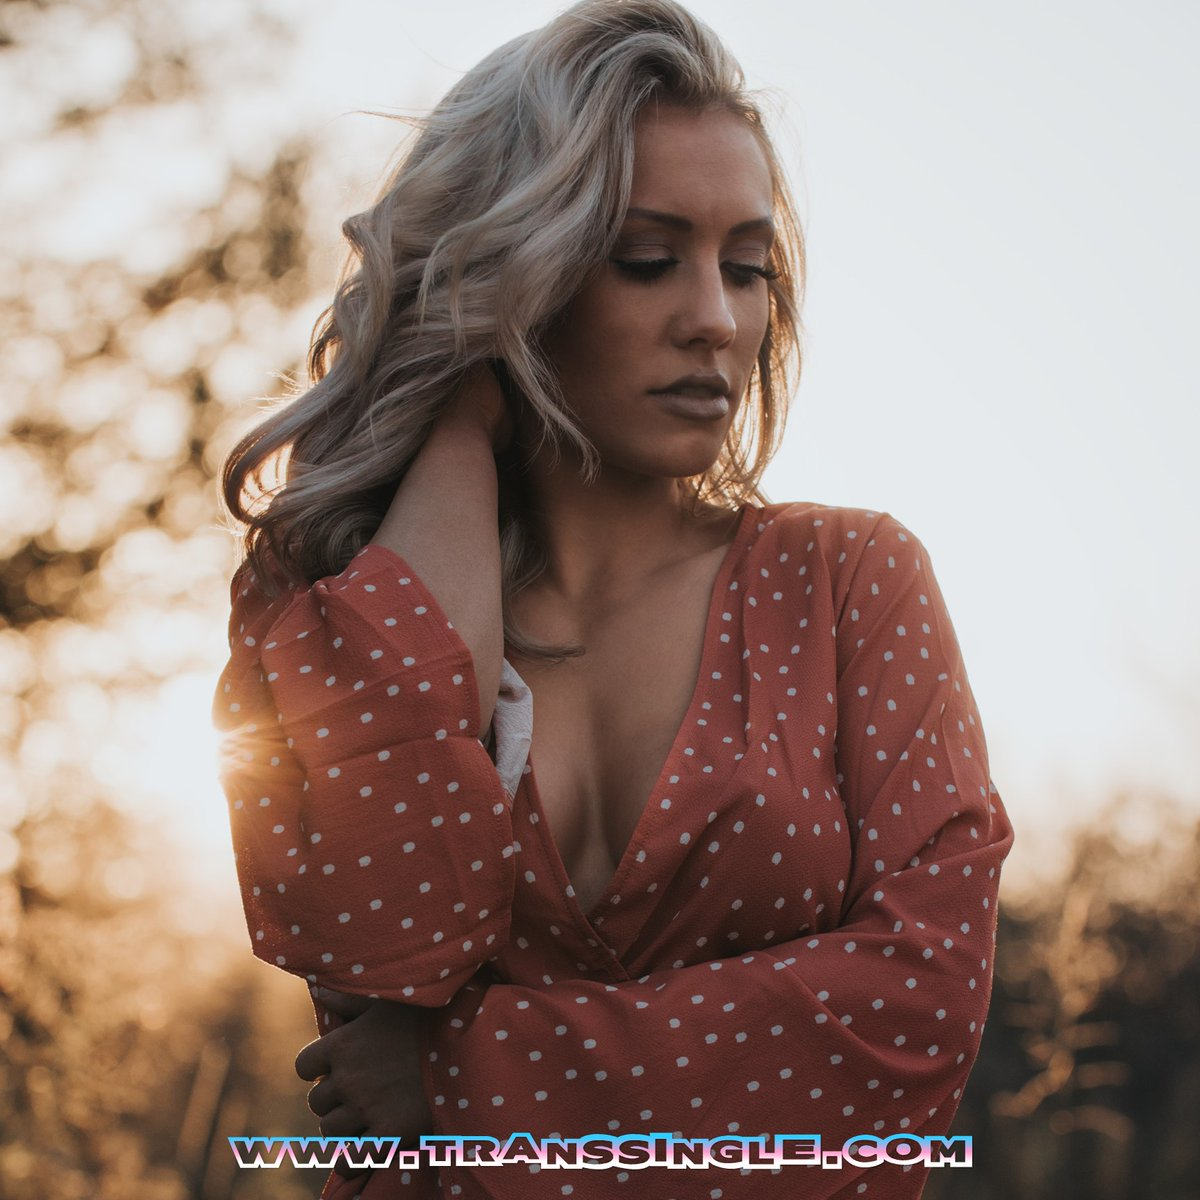 On TransSingle.com there is no time to waste as your next love will be only one click away. Make your account today & don't be single anymore! Your next partner is waiting for you on this amazing #TransgenderDatingSite! Visit our website & sign up to join us to help you.